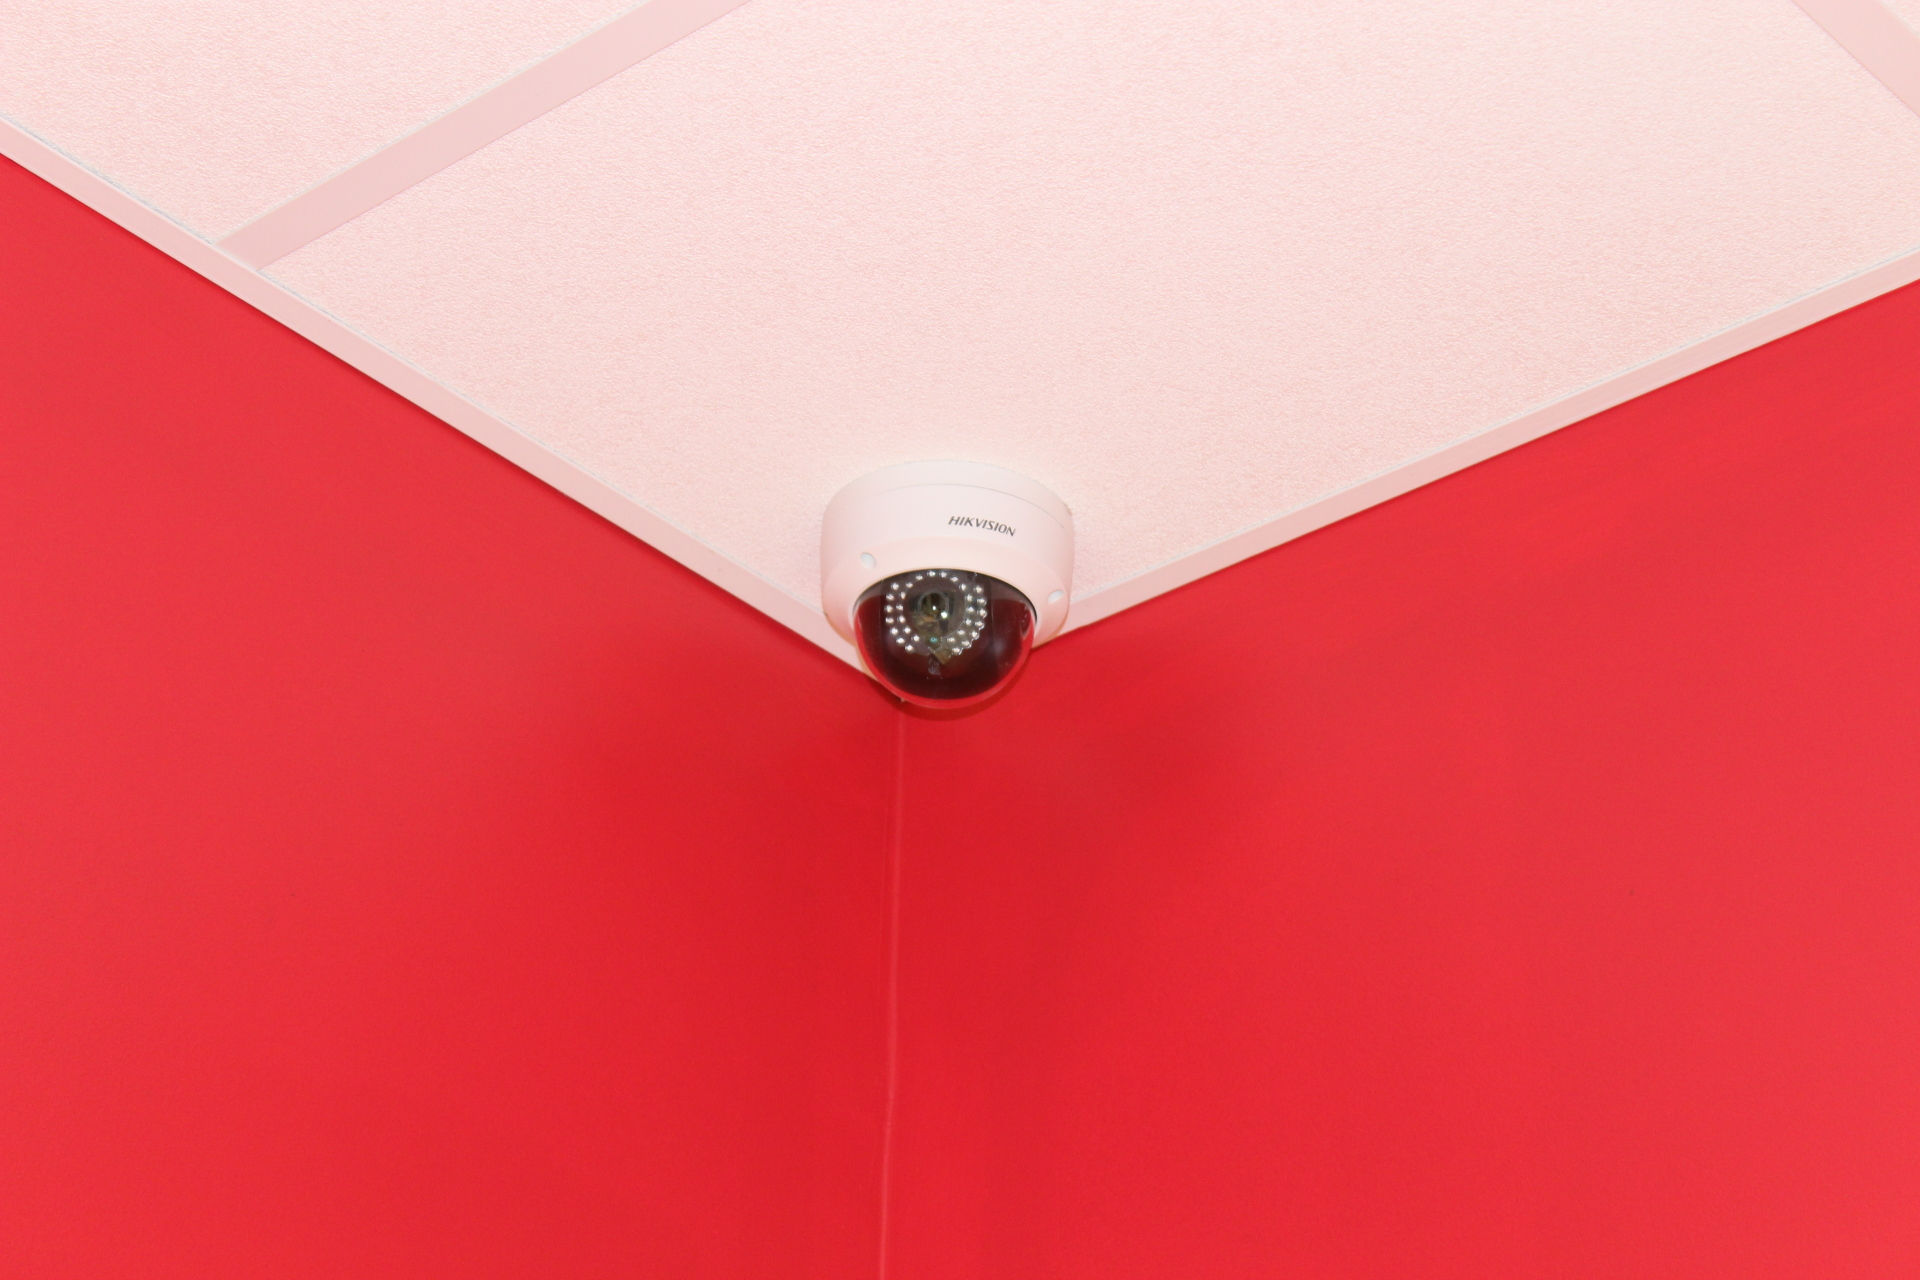 Eckington leisure centre security camera